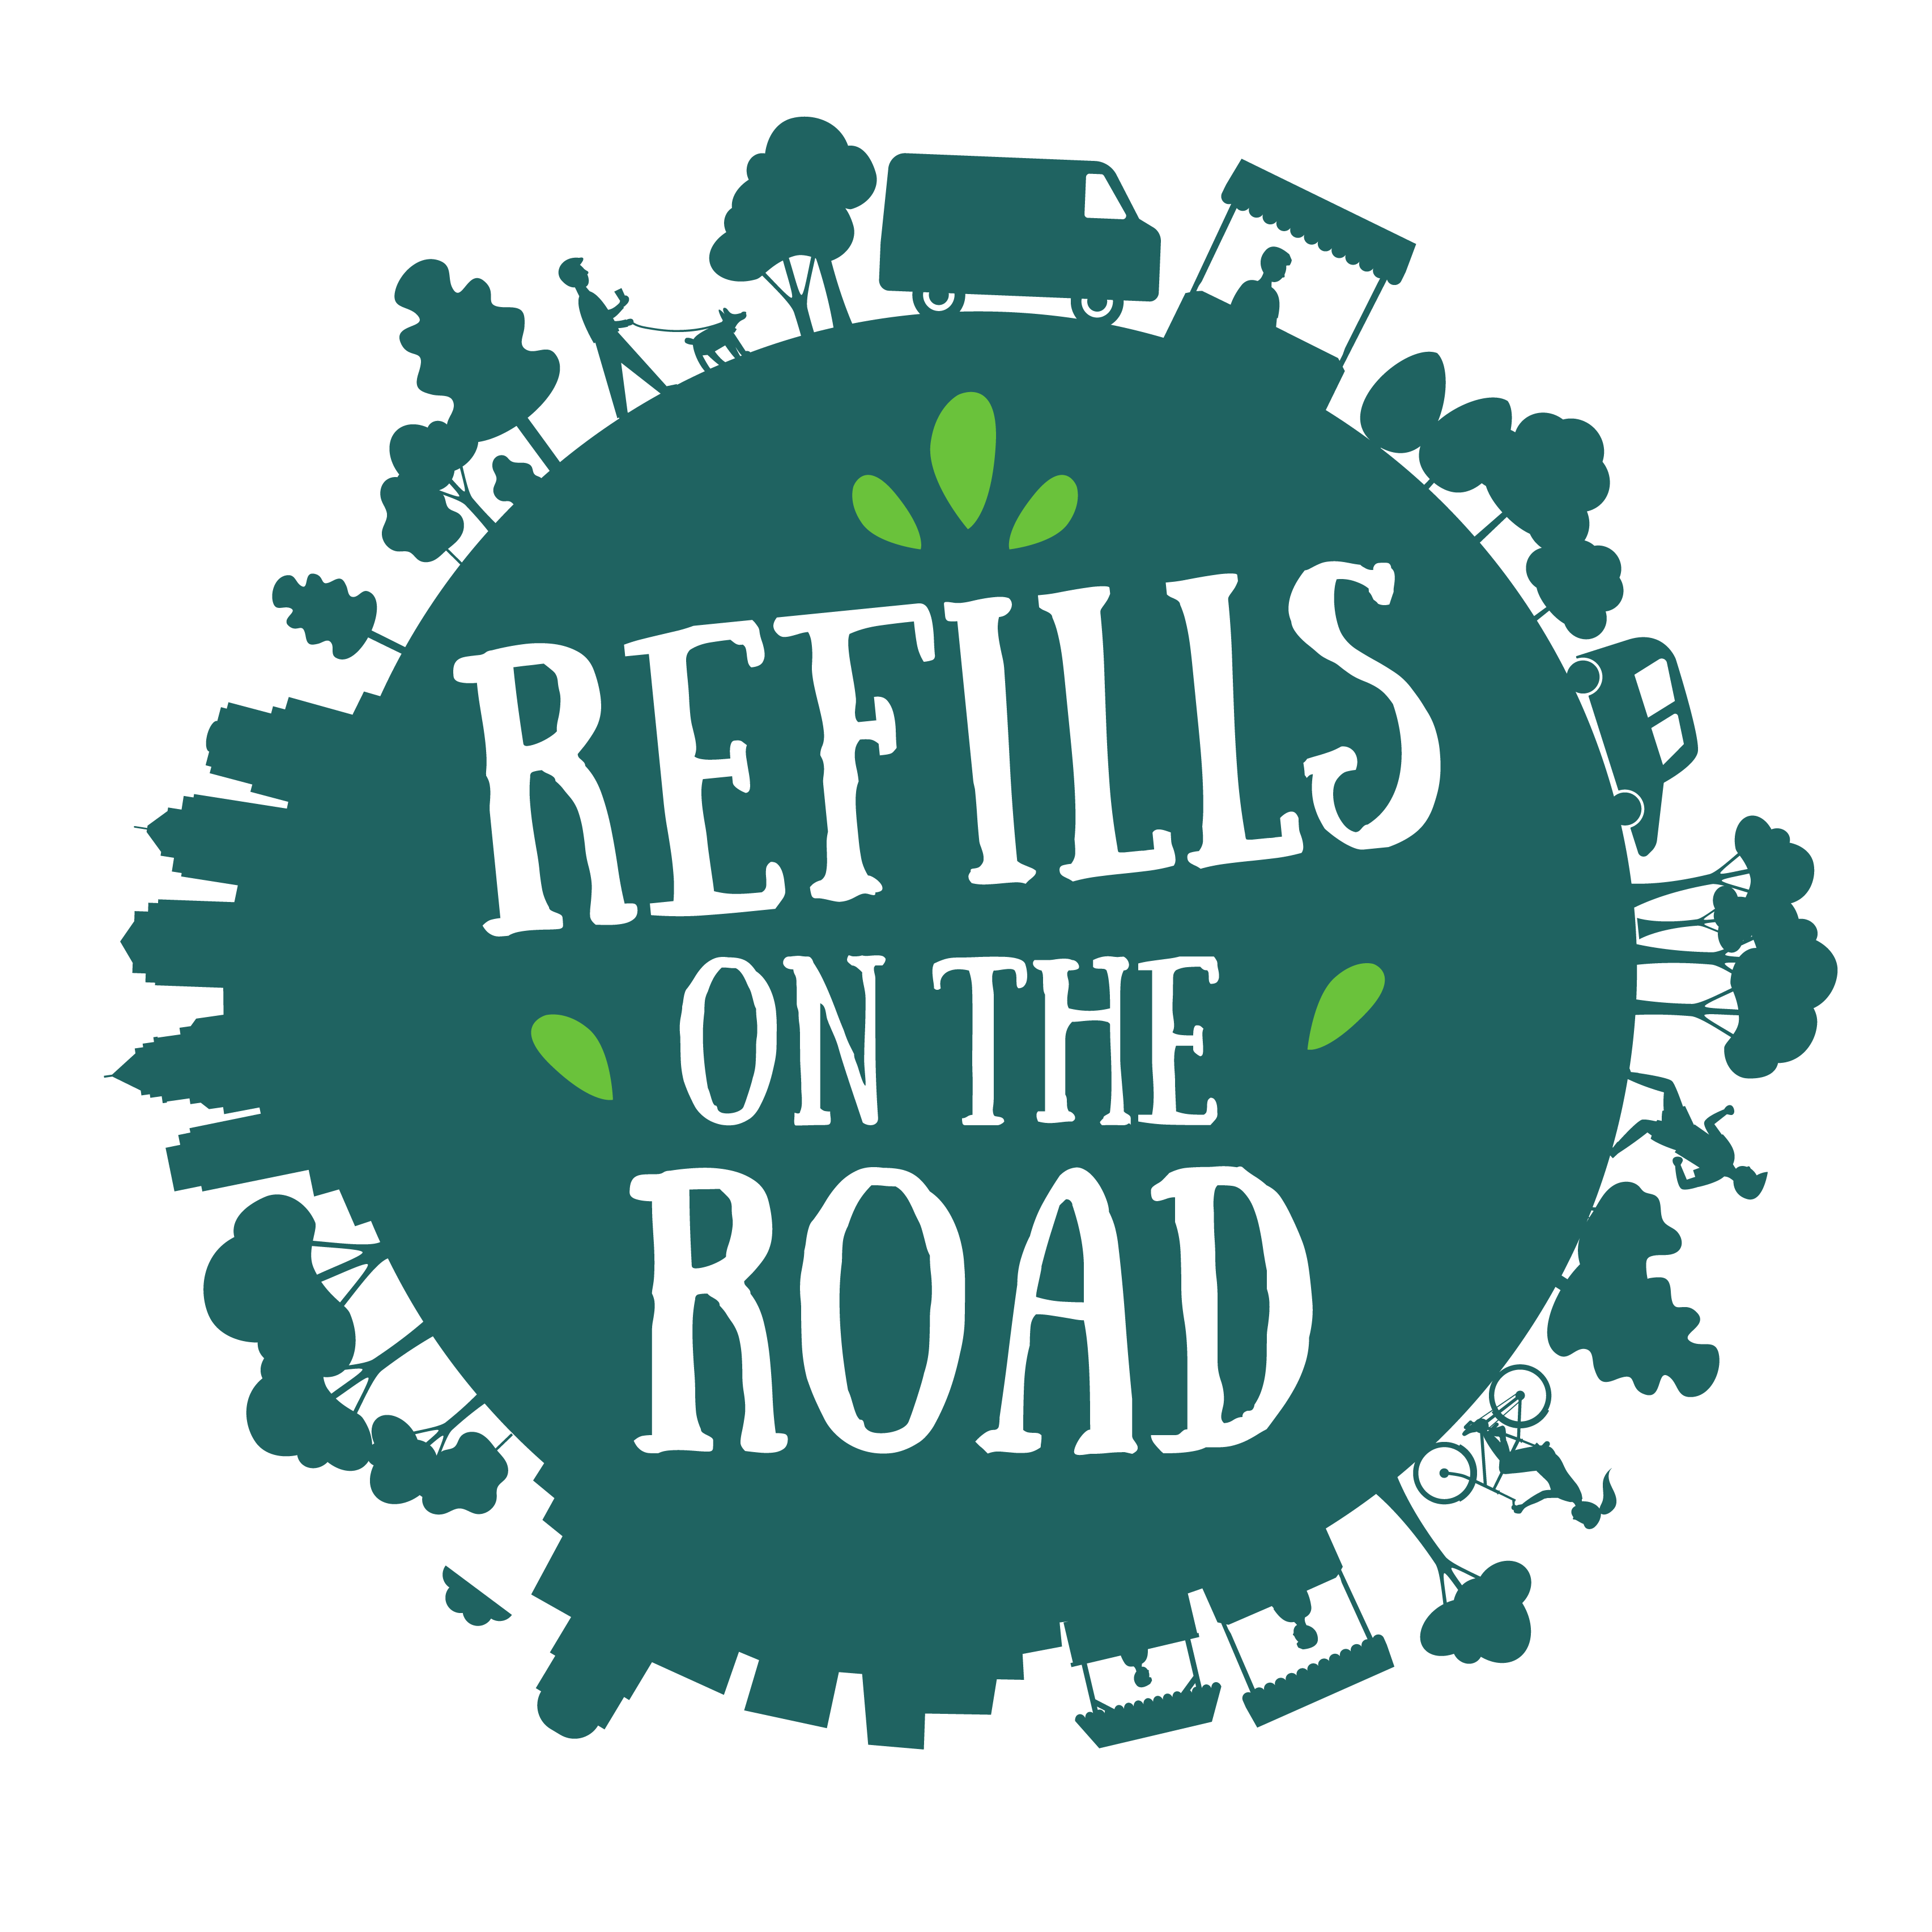 Refills on the Road